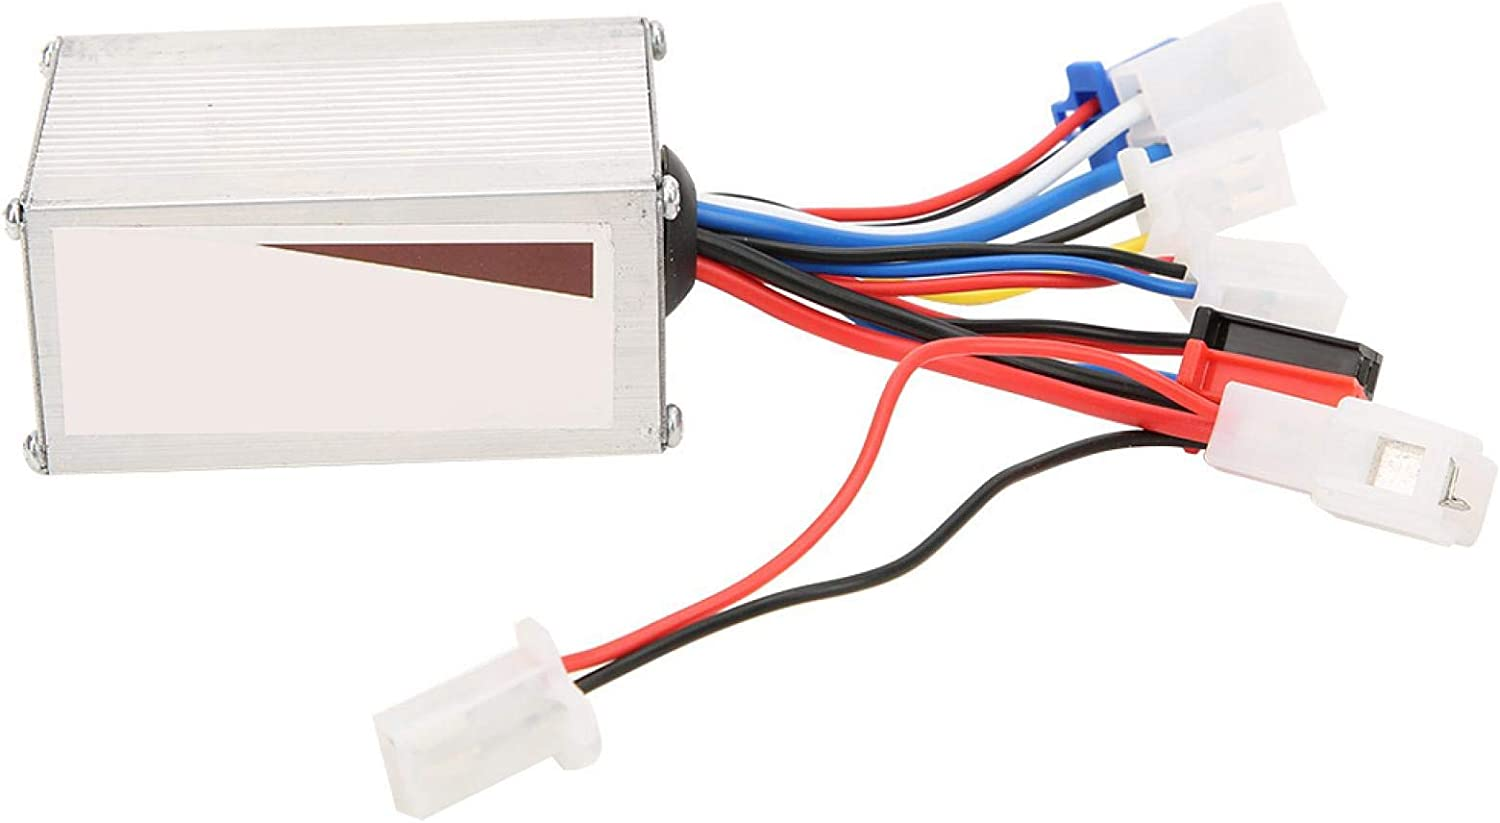 Choice Motor Brushed Controller Surprise price Low for Malfunction